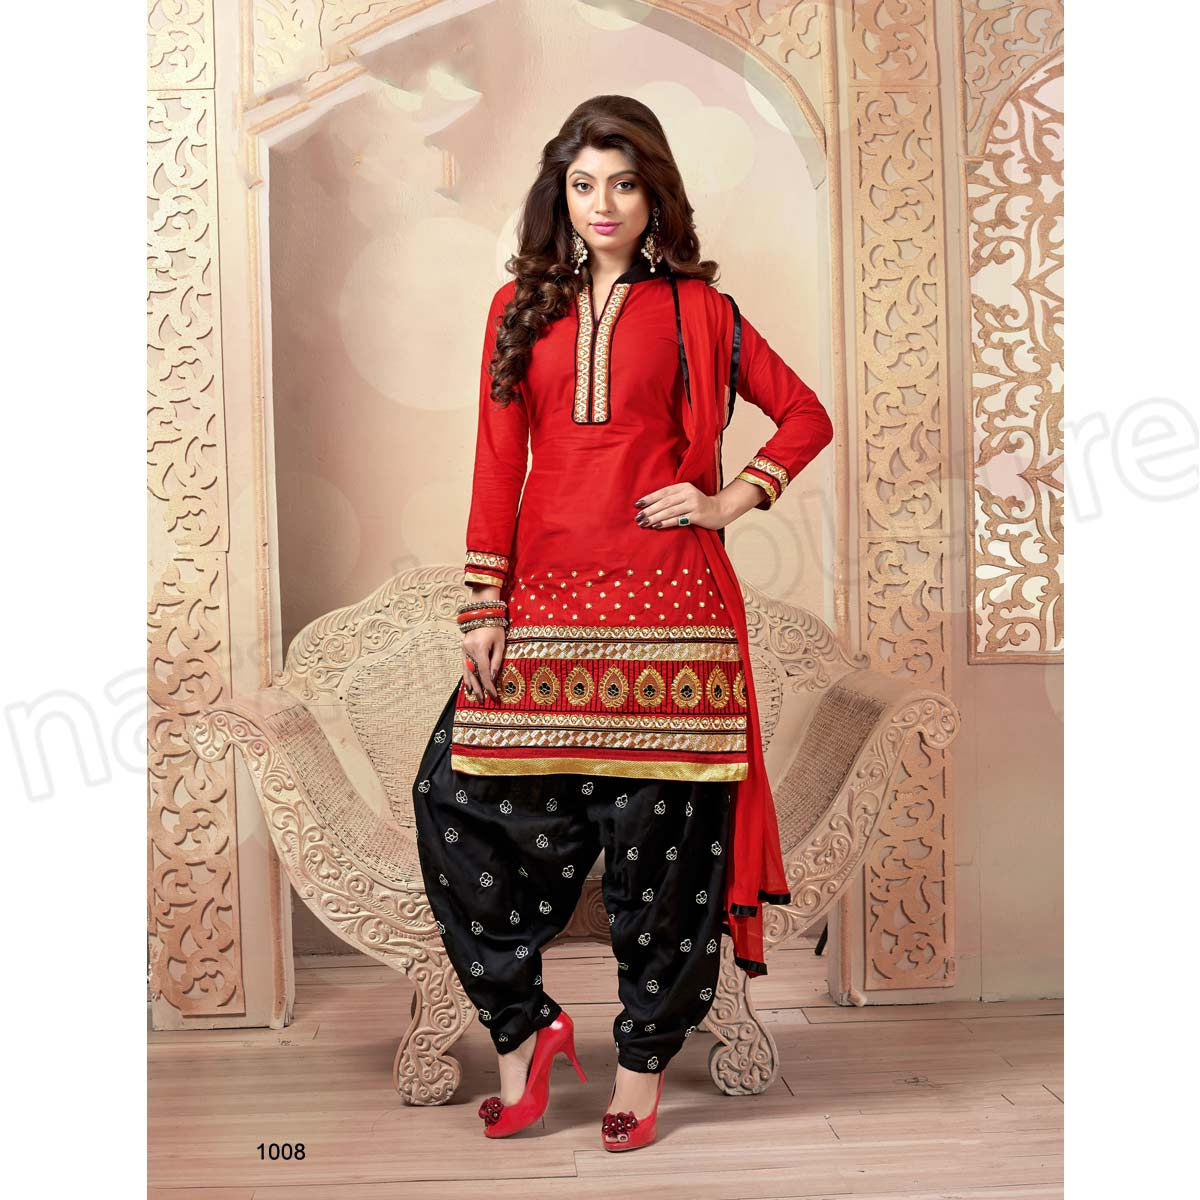 Latest Indian Patiala shalwar kameez fashion 2015-2016 (1)